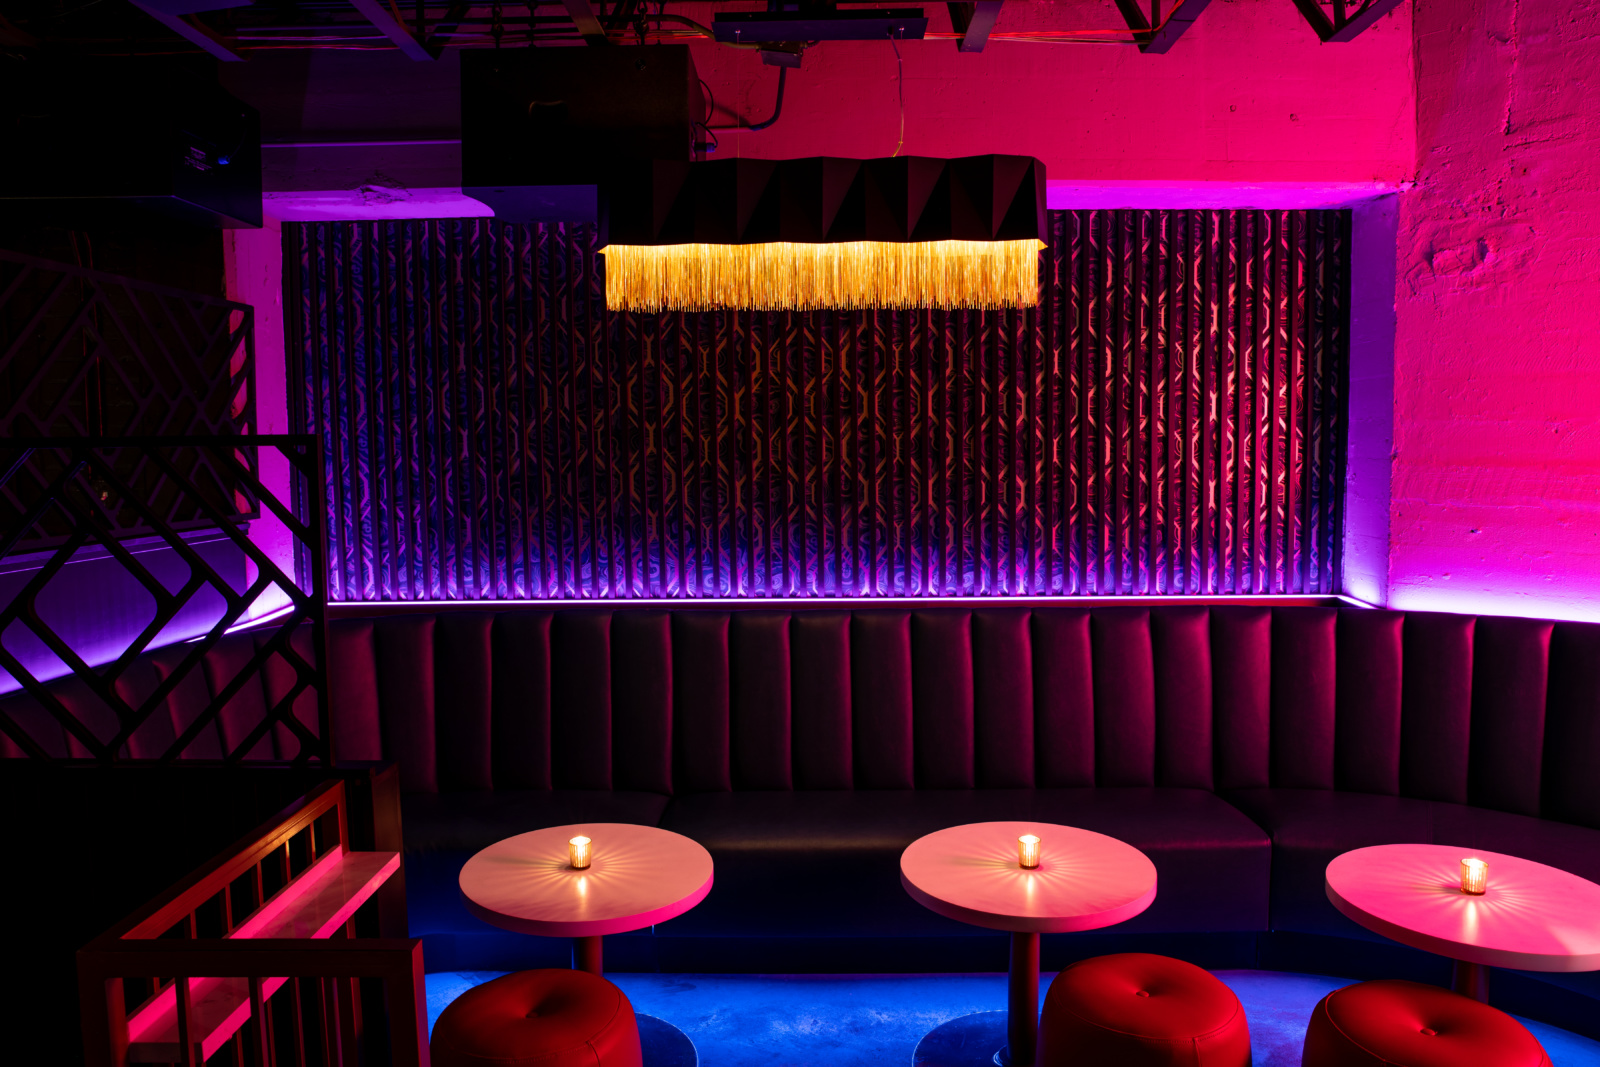 Neon lights, custom made booths, and extravagant light fixture at Rambler